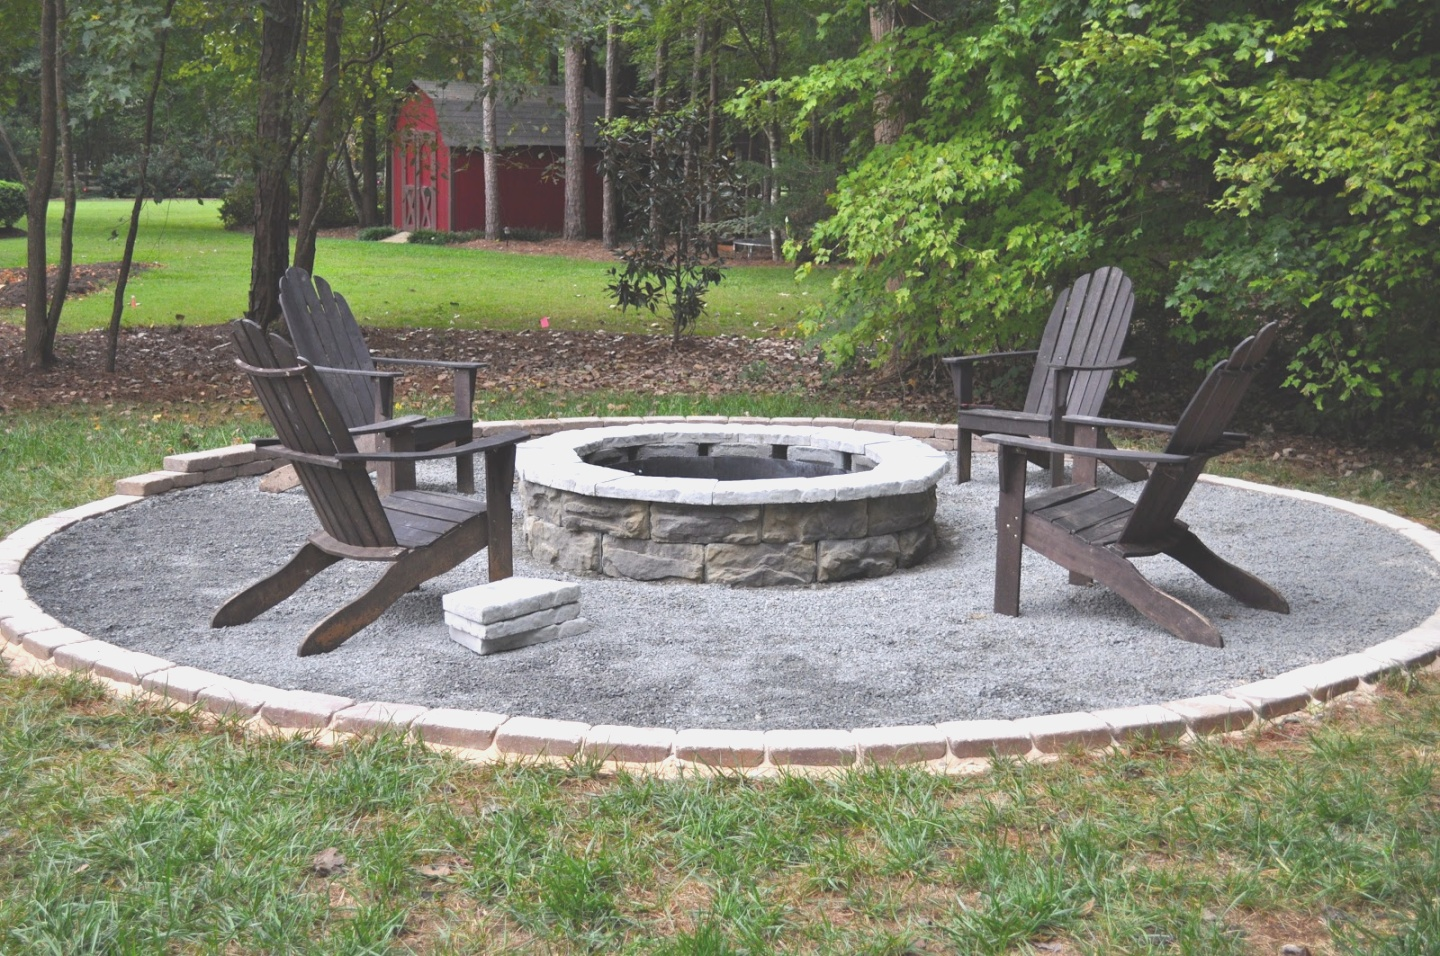 fire pit designs | Fun Backyard Patio Ideas And Fire Pit Backyard Fire Pit Designs ..